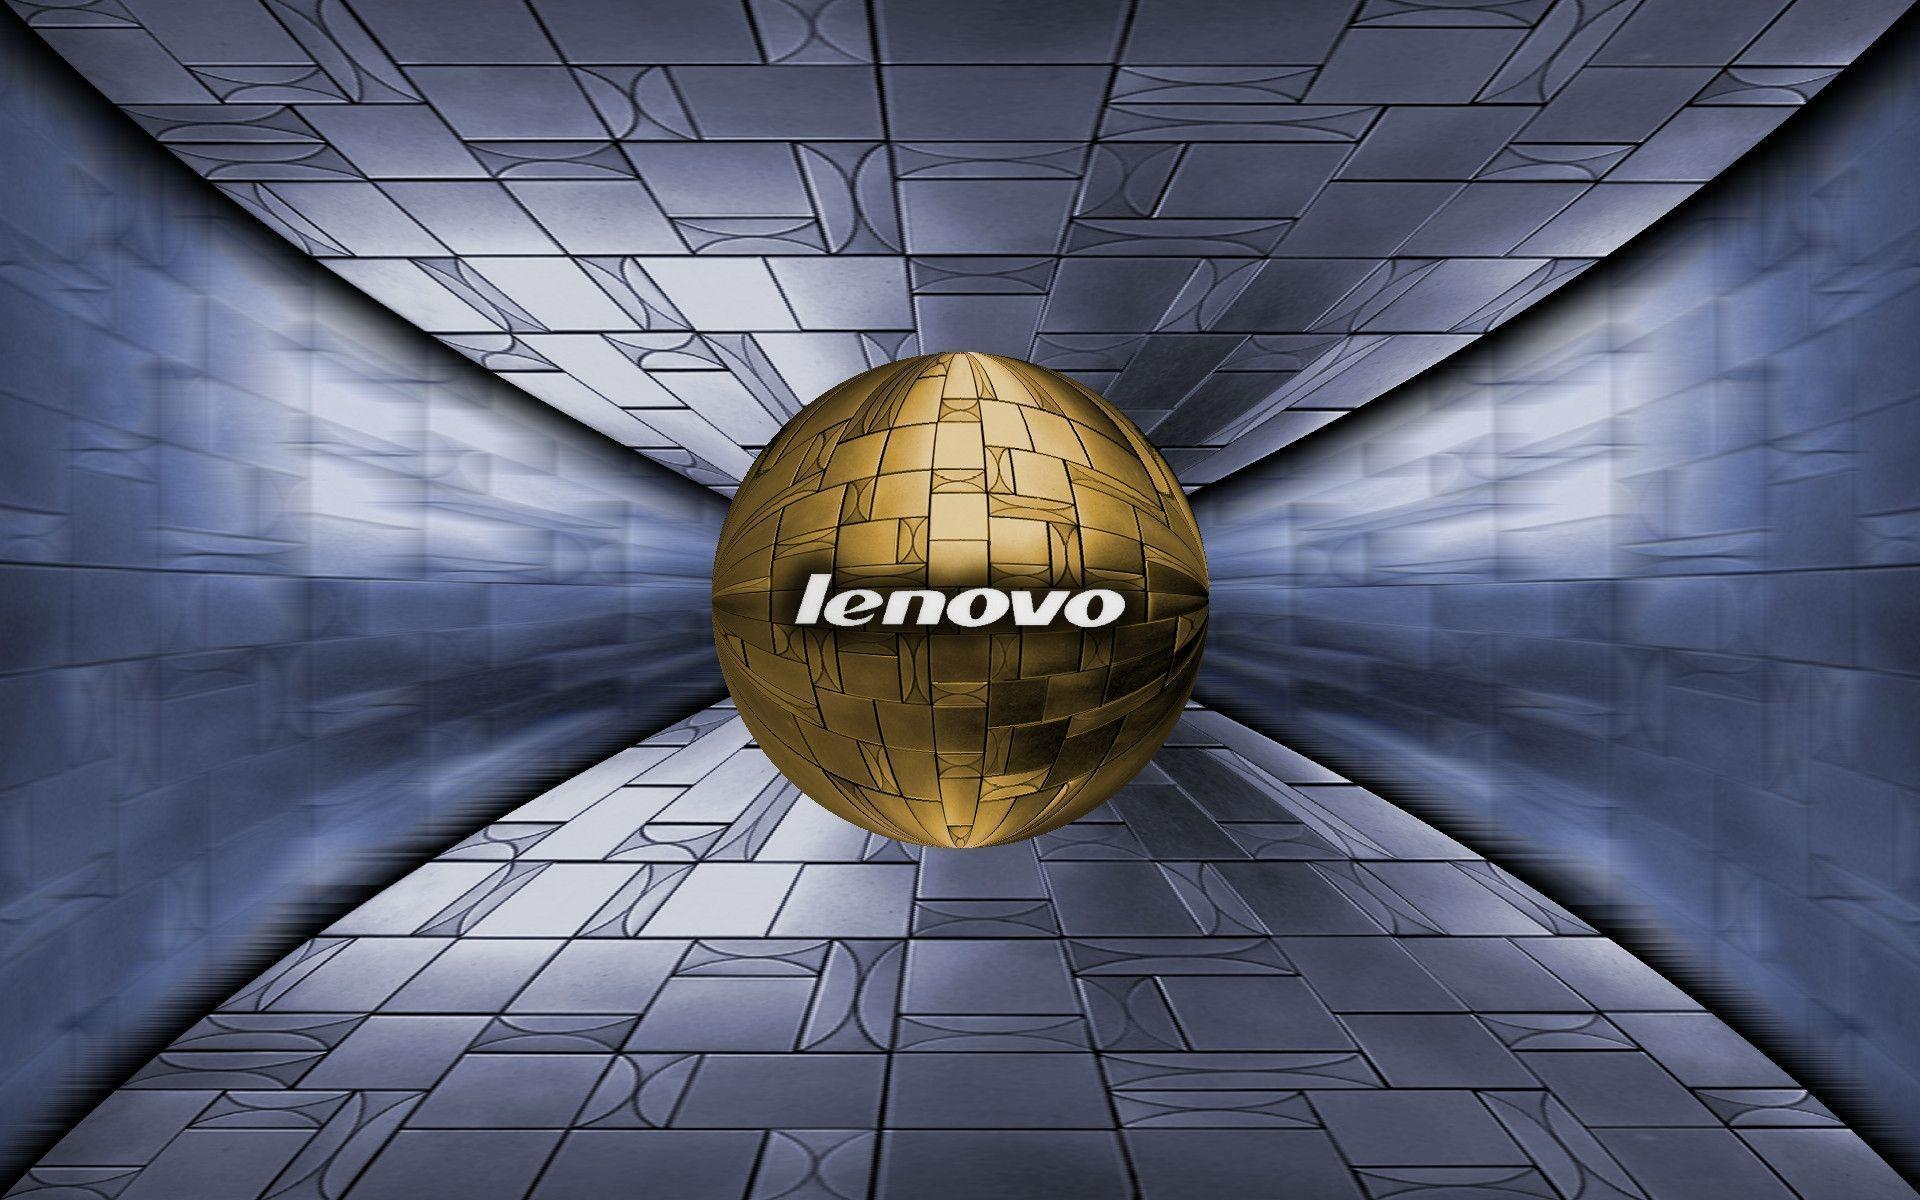 Lenovo wallpapers wallpaper cave lenovo world map wallpaper 871602 gumiabroncs Images